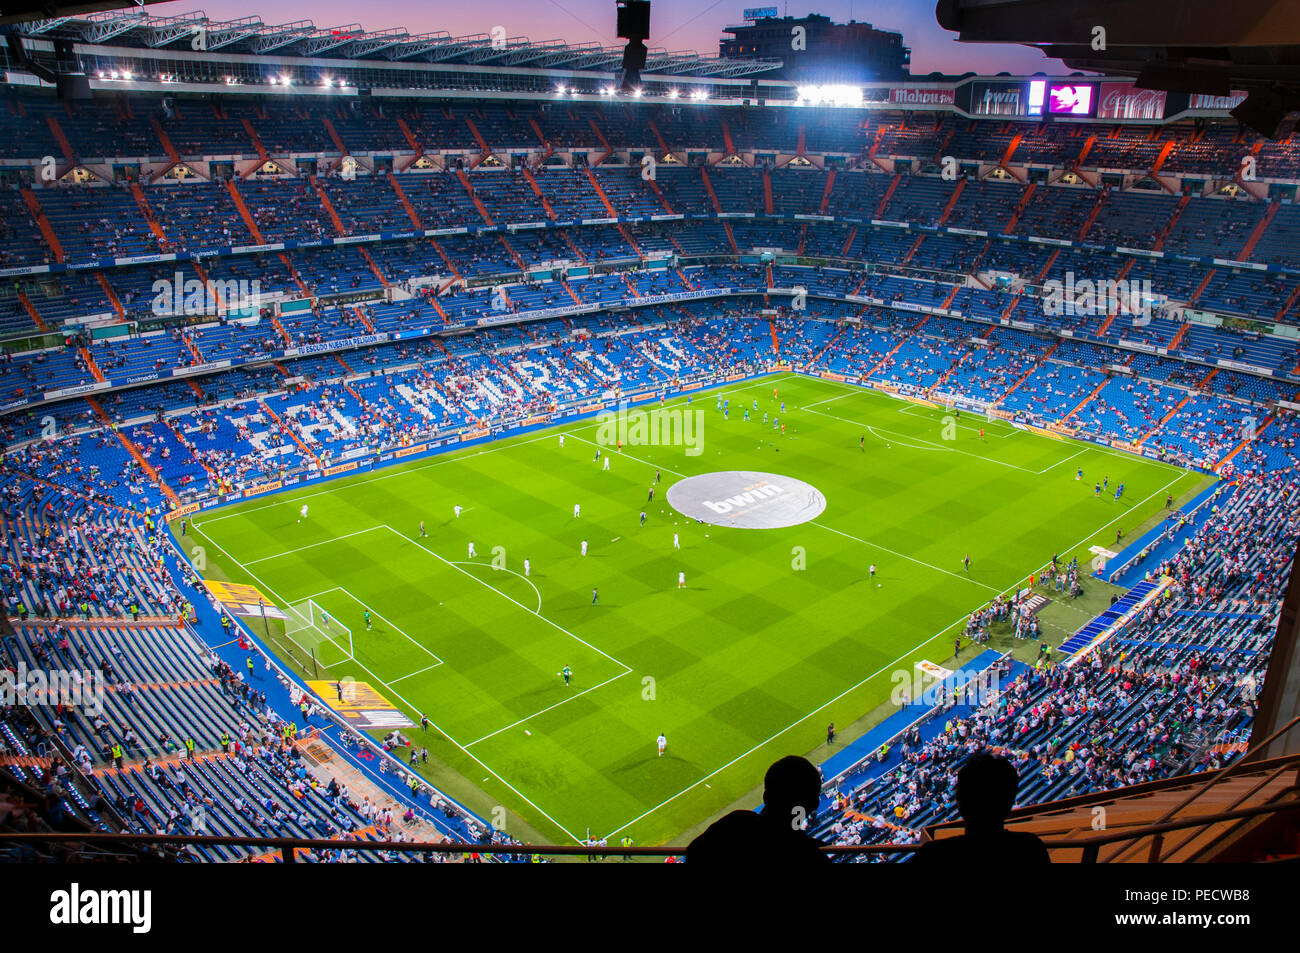 Santiago Bernabeu Stadium During A Football Match Night View Madrid Spain Stock Photo Alamy